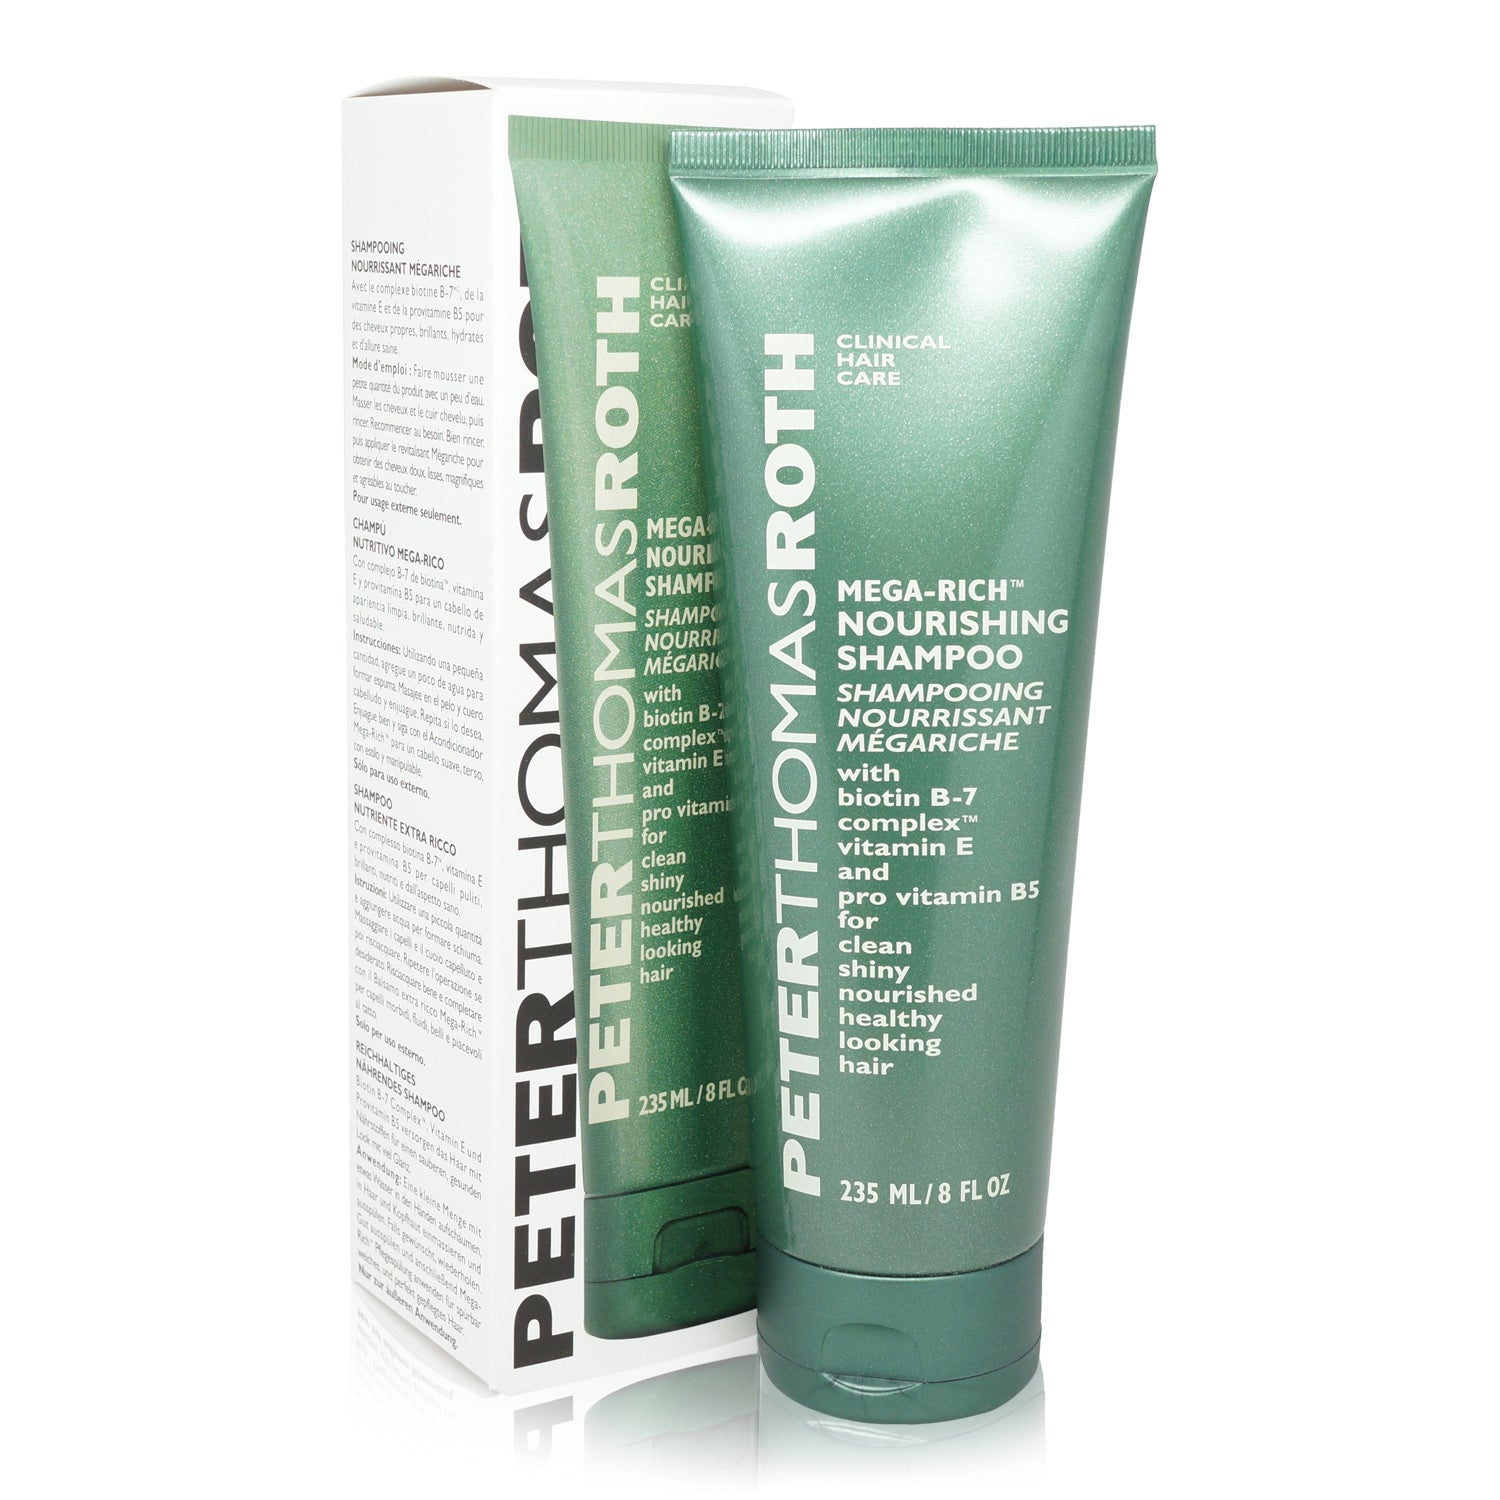 PETER THOMAS ROTH ~ MEGA RICH NOURISHING SHAMPOO ~ 8OZ